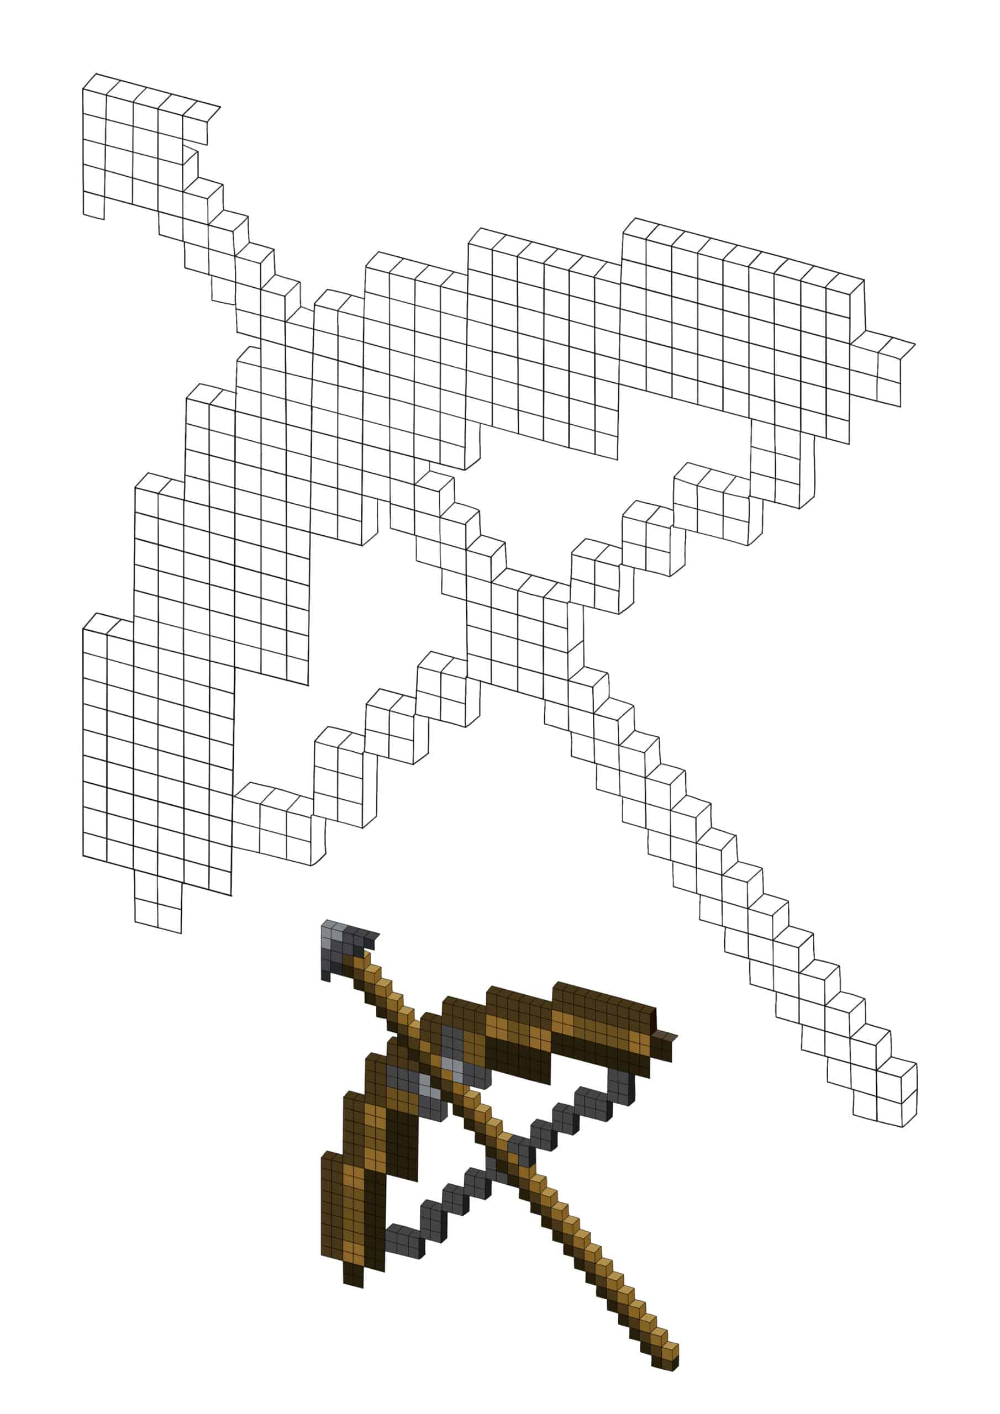 Minecraft Bow And Arrow Coloring Pages 2 Free Coloring Sheets 2021 In 2021 Minecraft Coloring Pages Free Coloring Sheets Minecraft Bow And Arrow